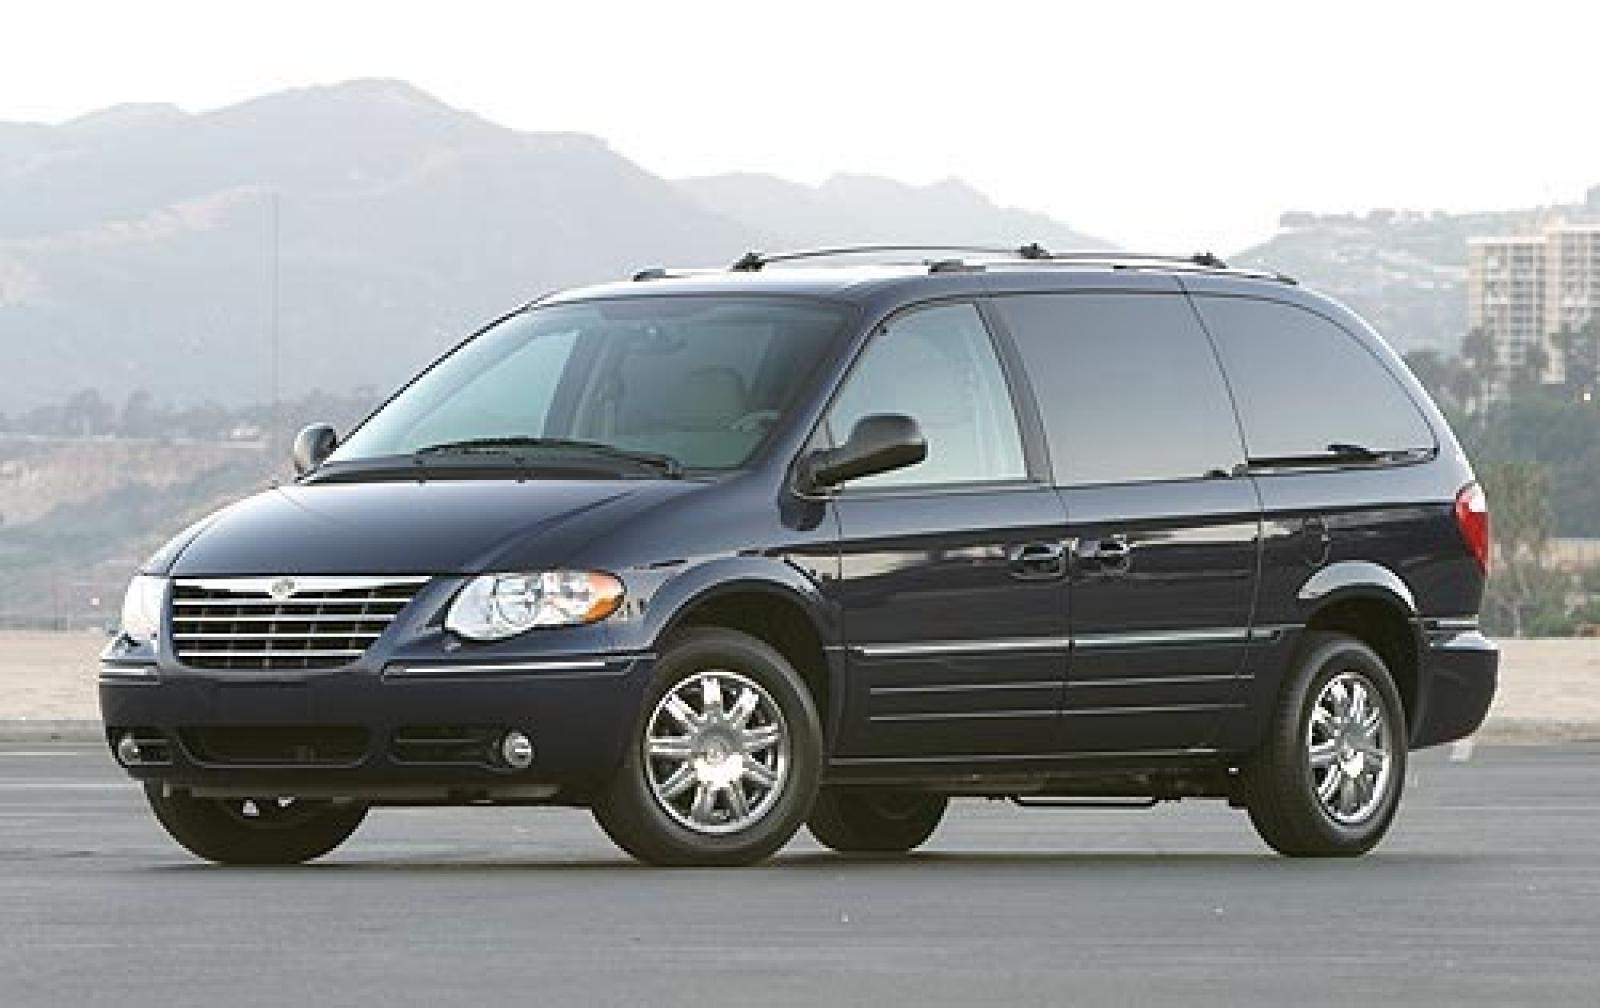 2005 Dodge Grand Caravan - Information And Photos